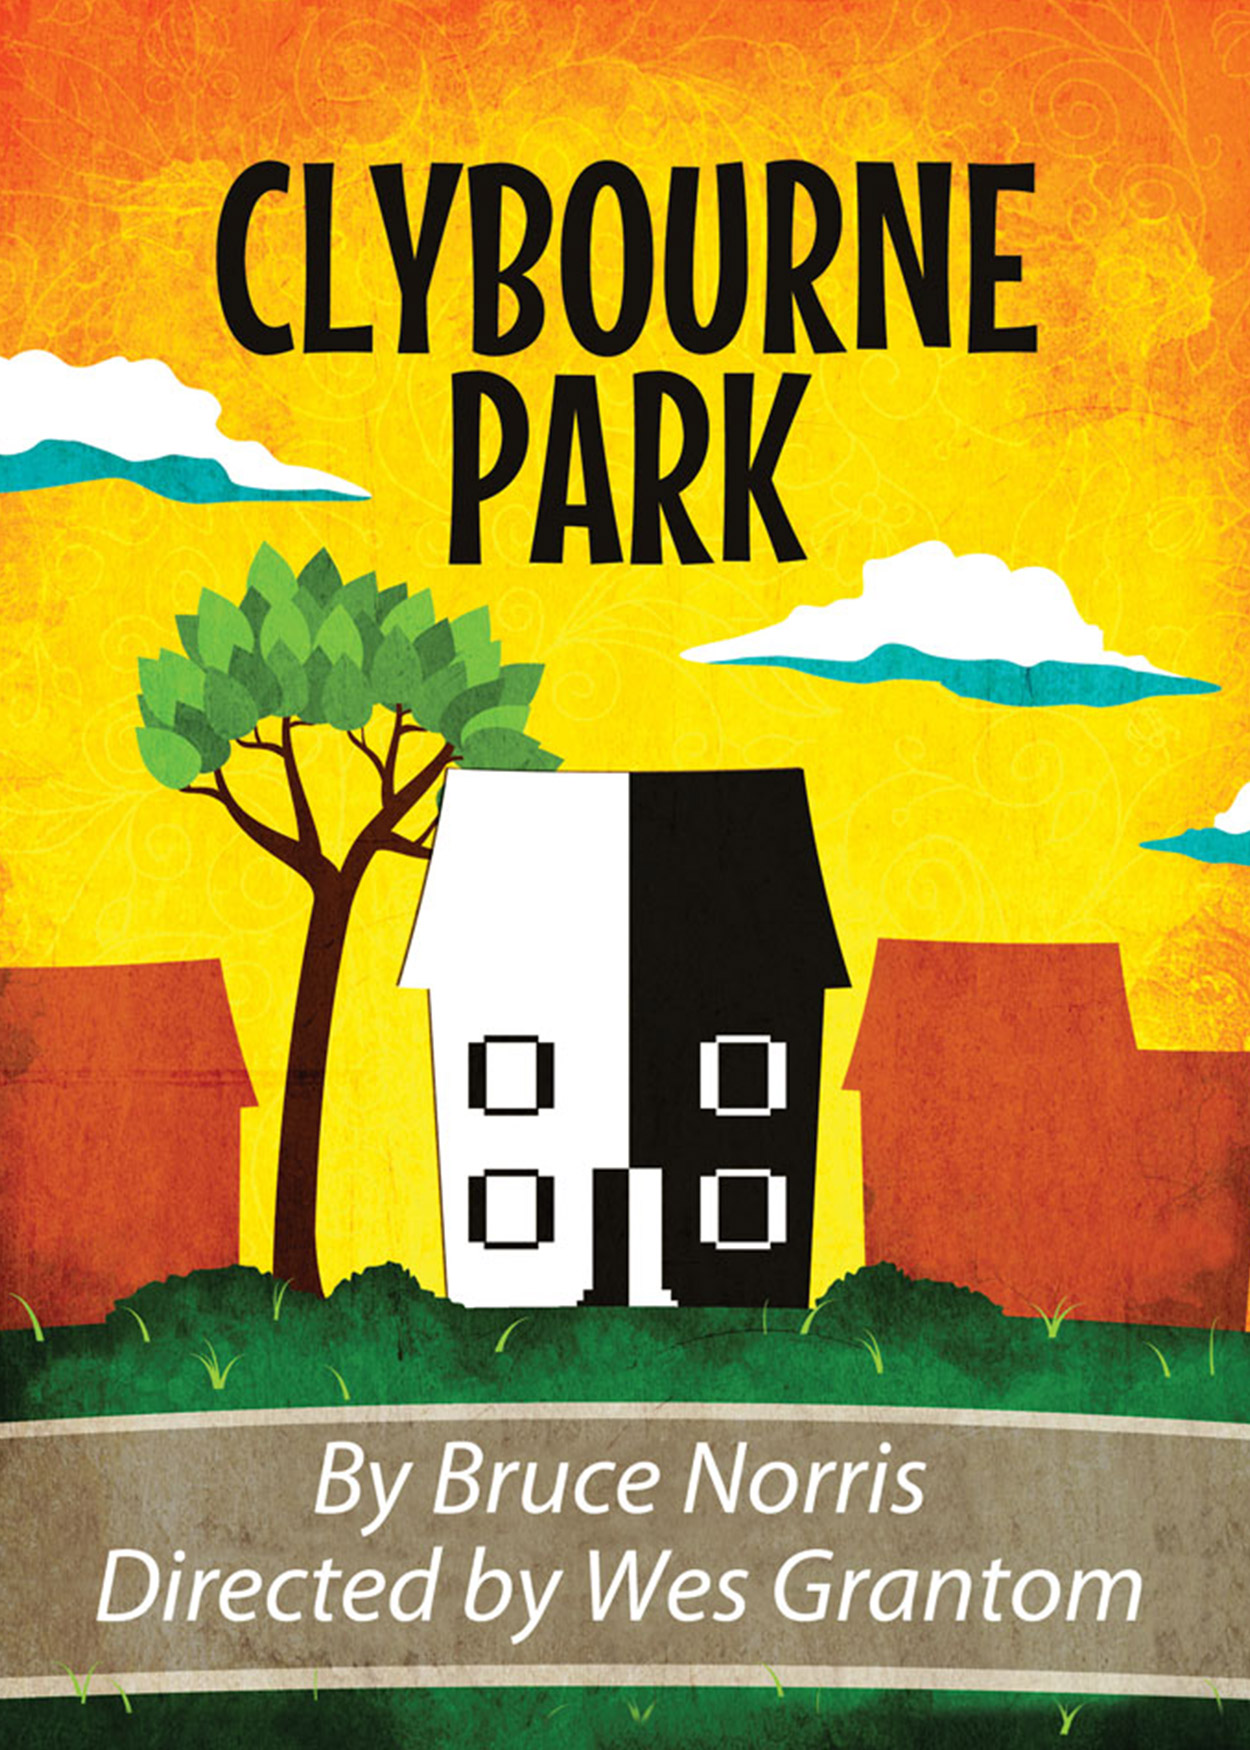 Key Art from Clybourne Park (2013). At the center a house is split in half with one side black and the other side white. Other houses, in a muted red color, surround the house.